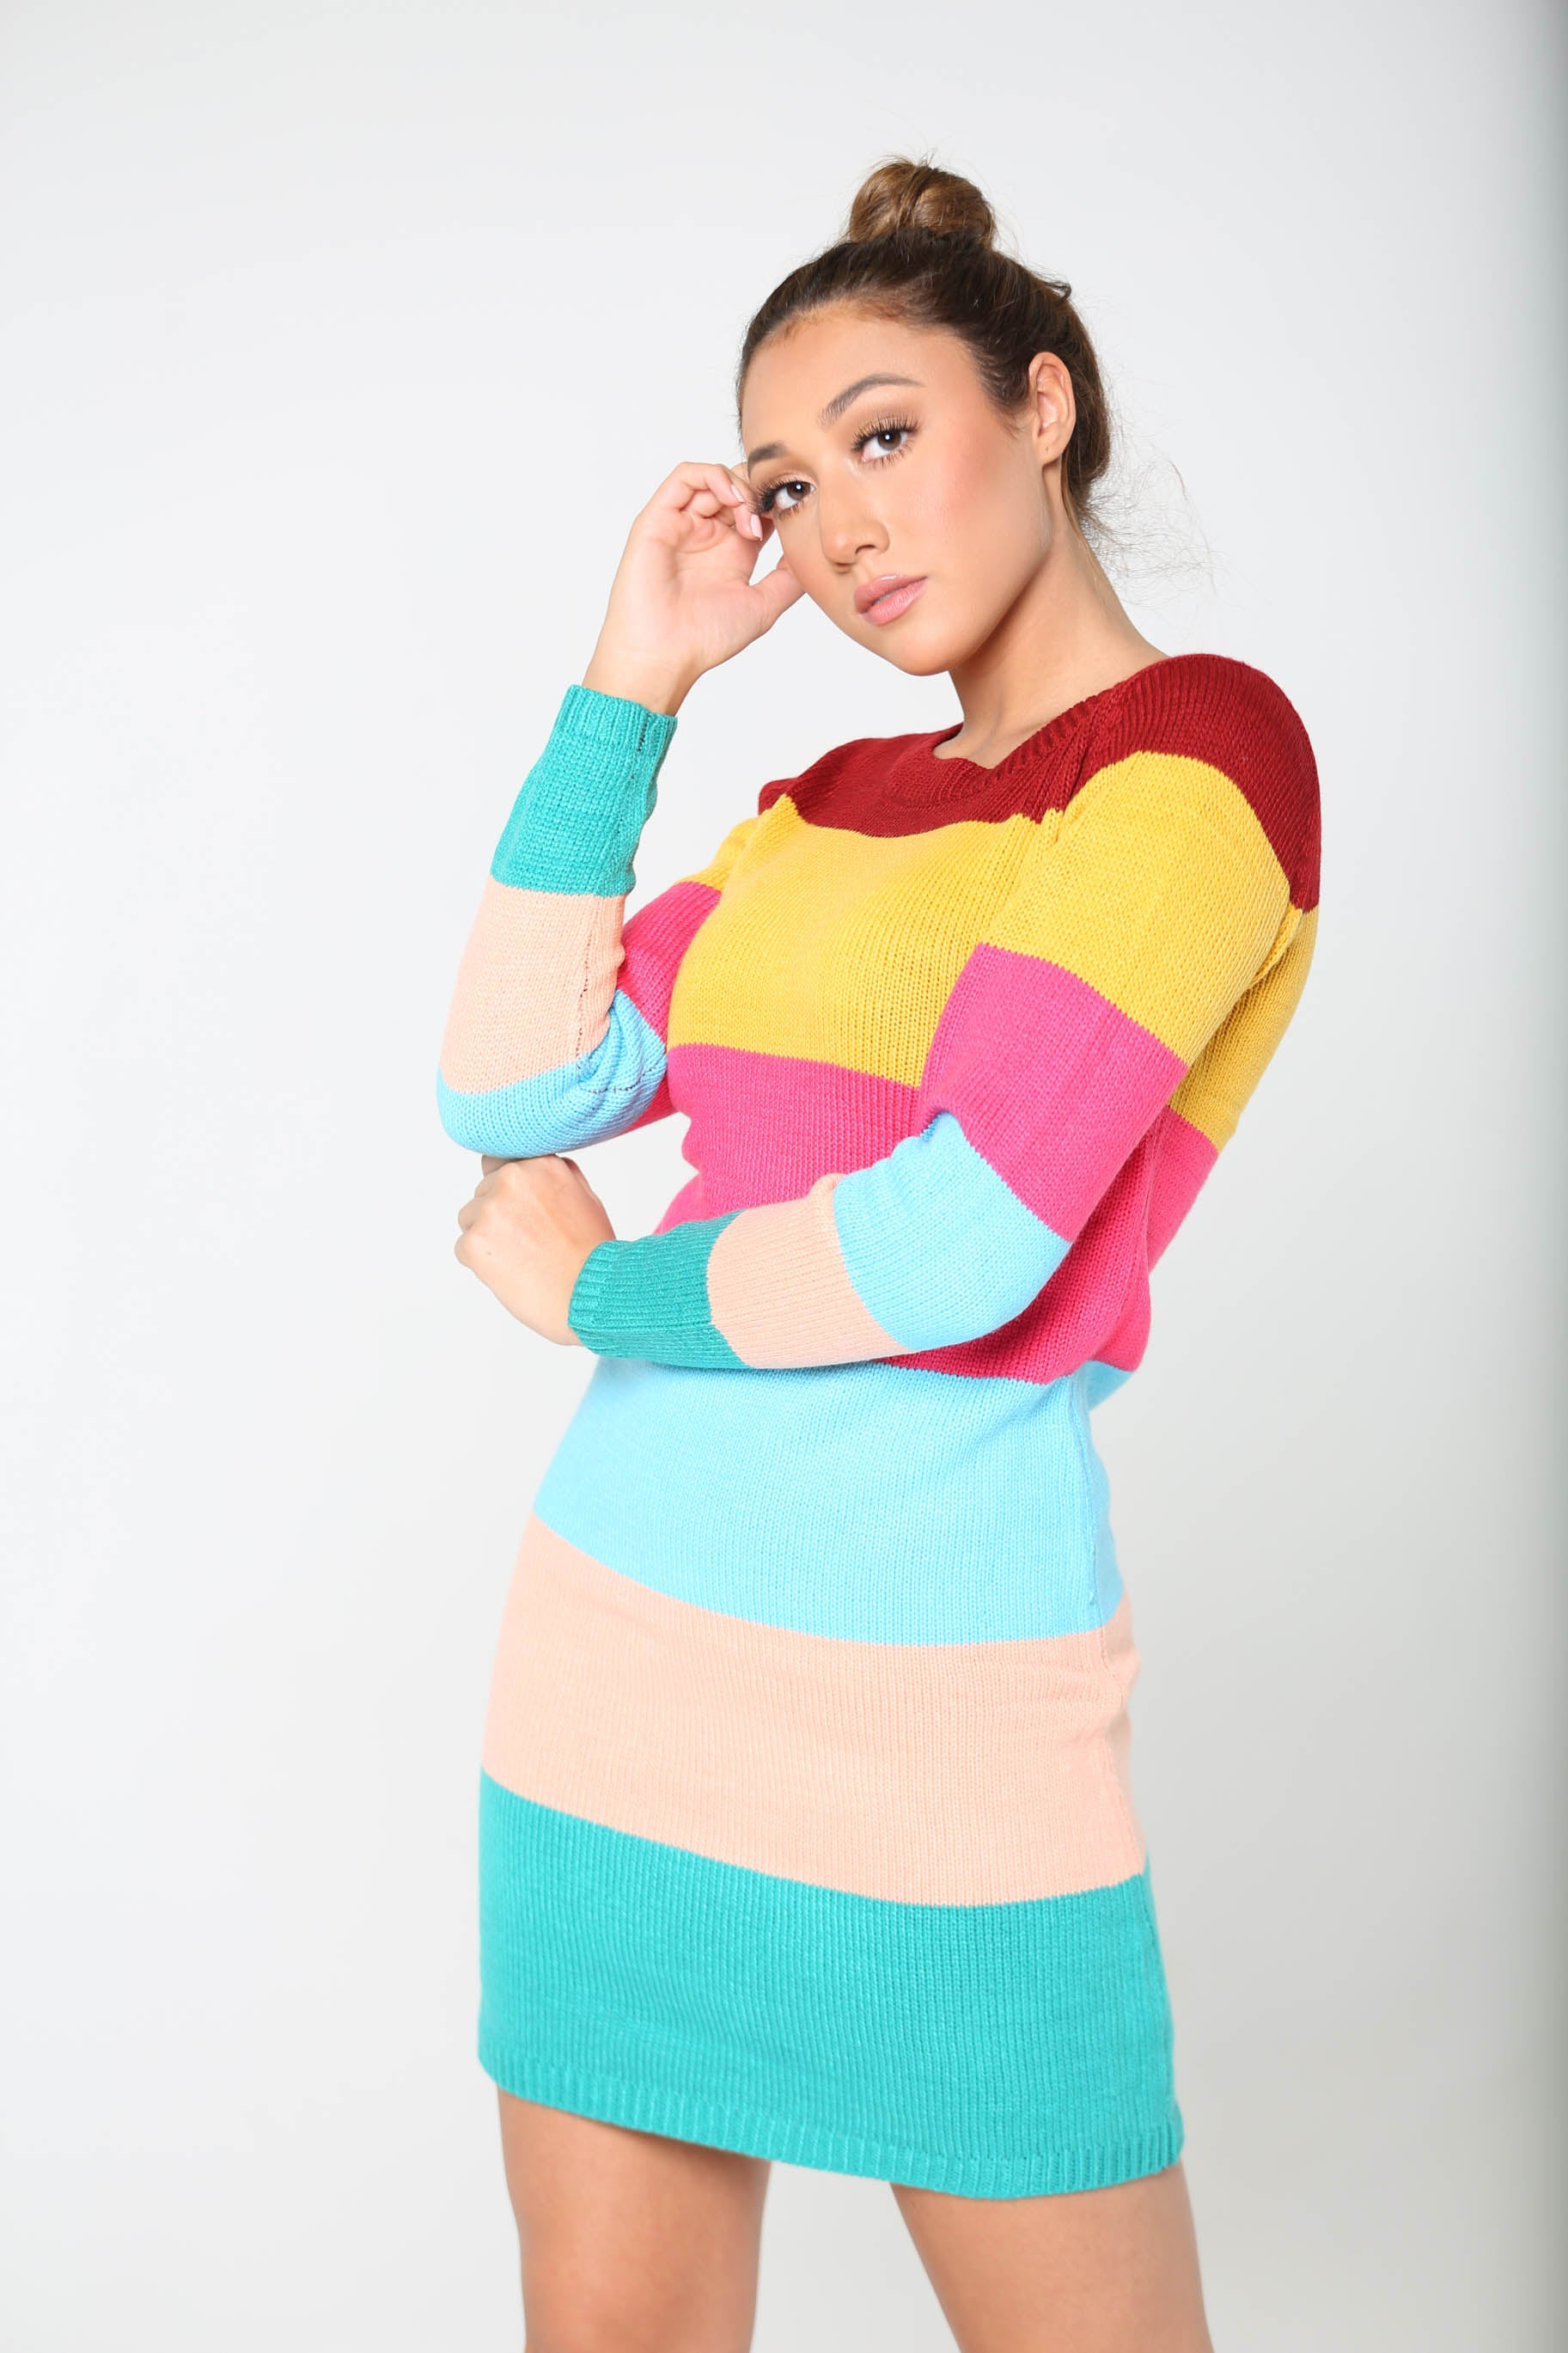 Colorful Candy Corn Sweater Dress - The Flawless Babe Boutique